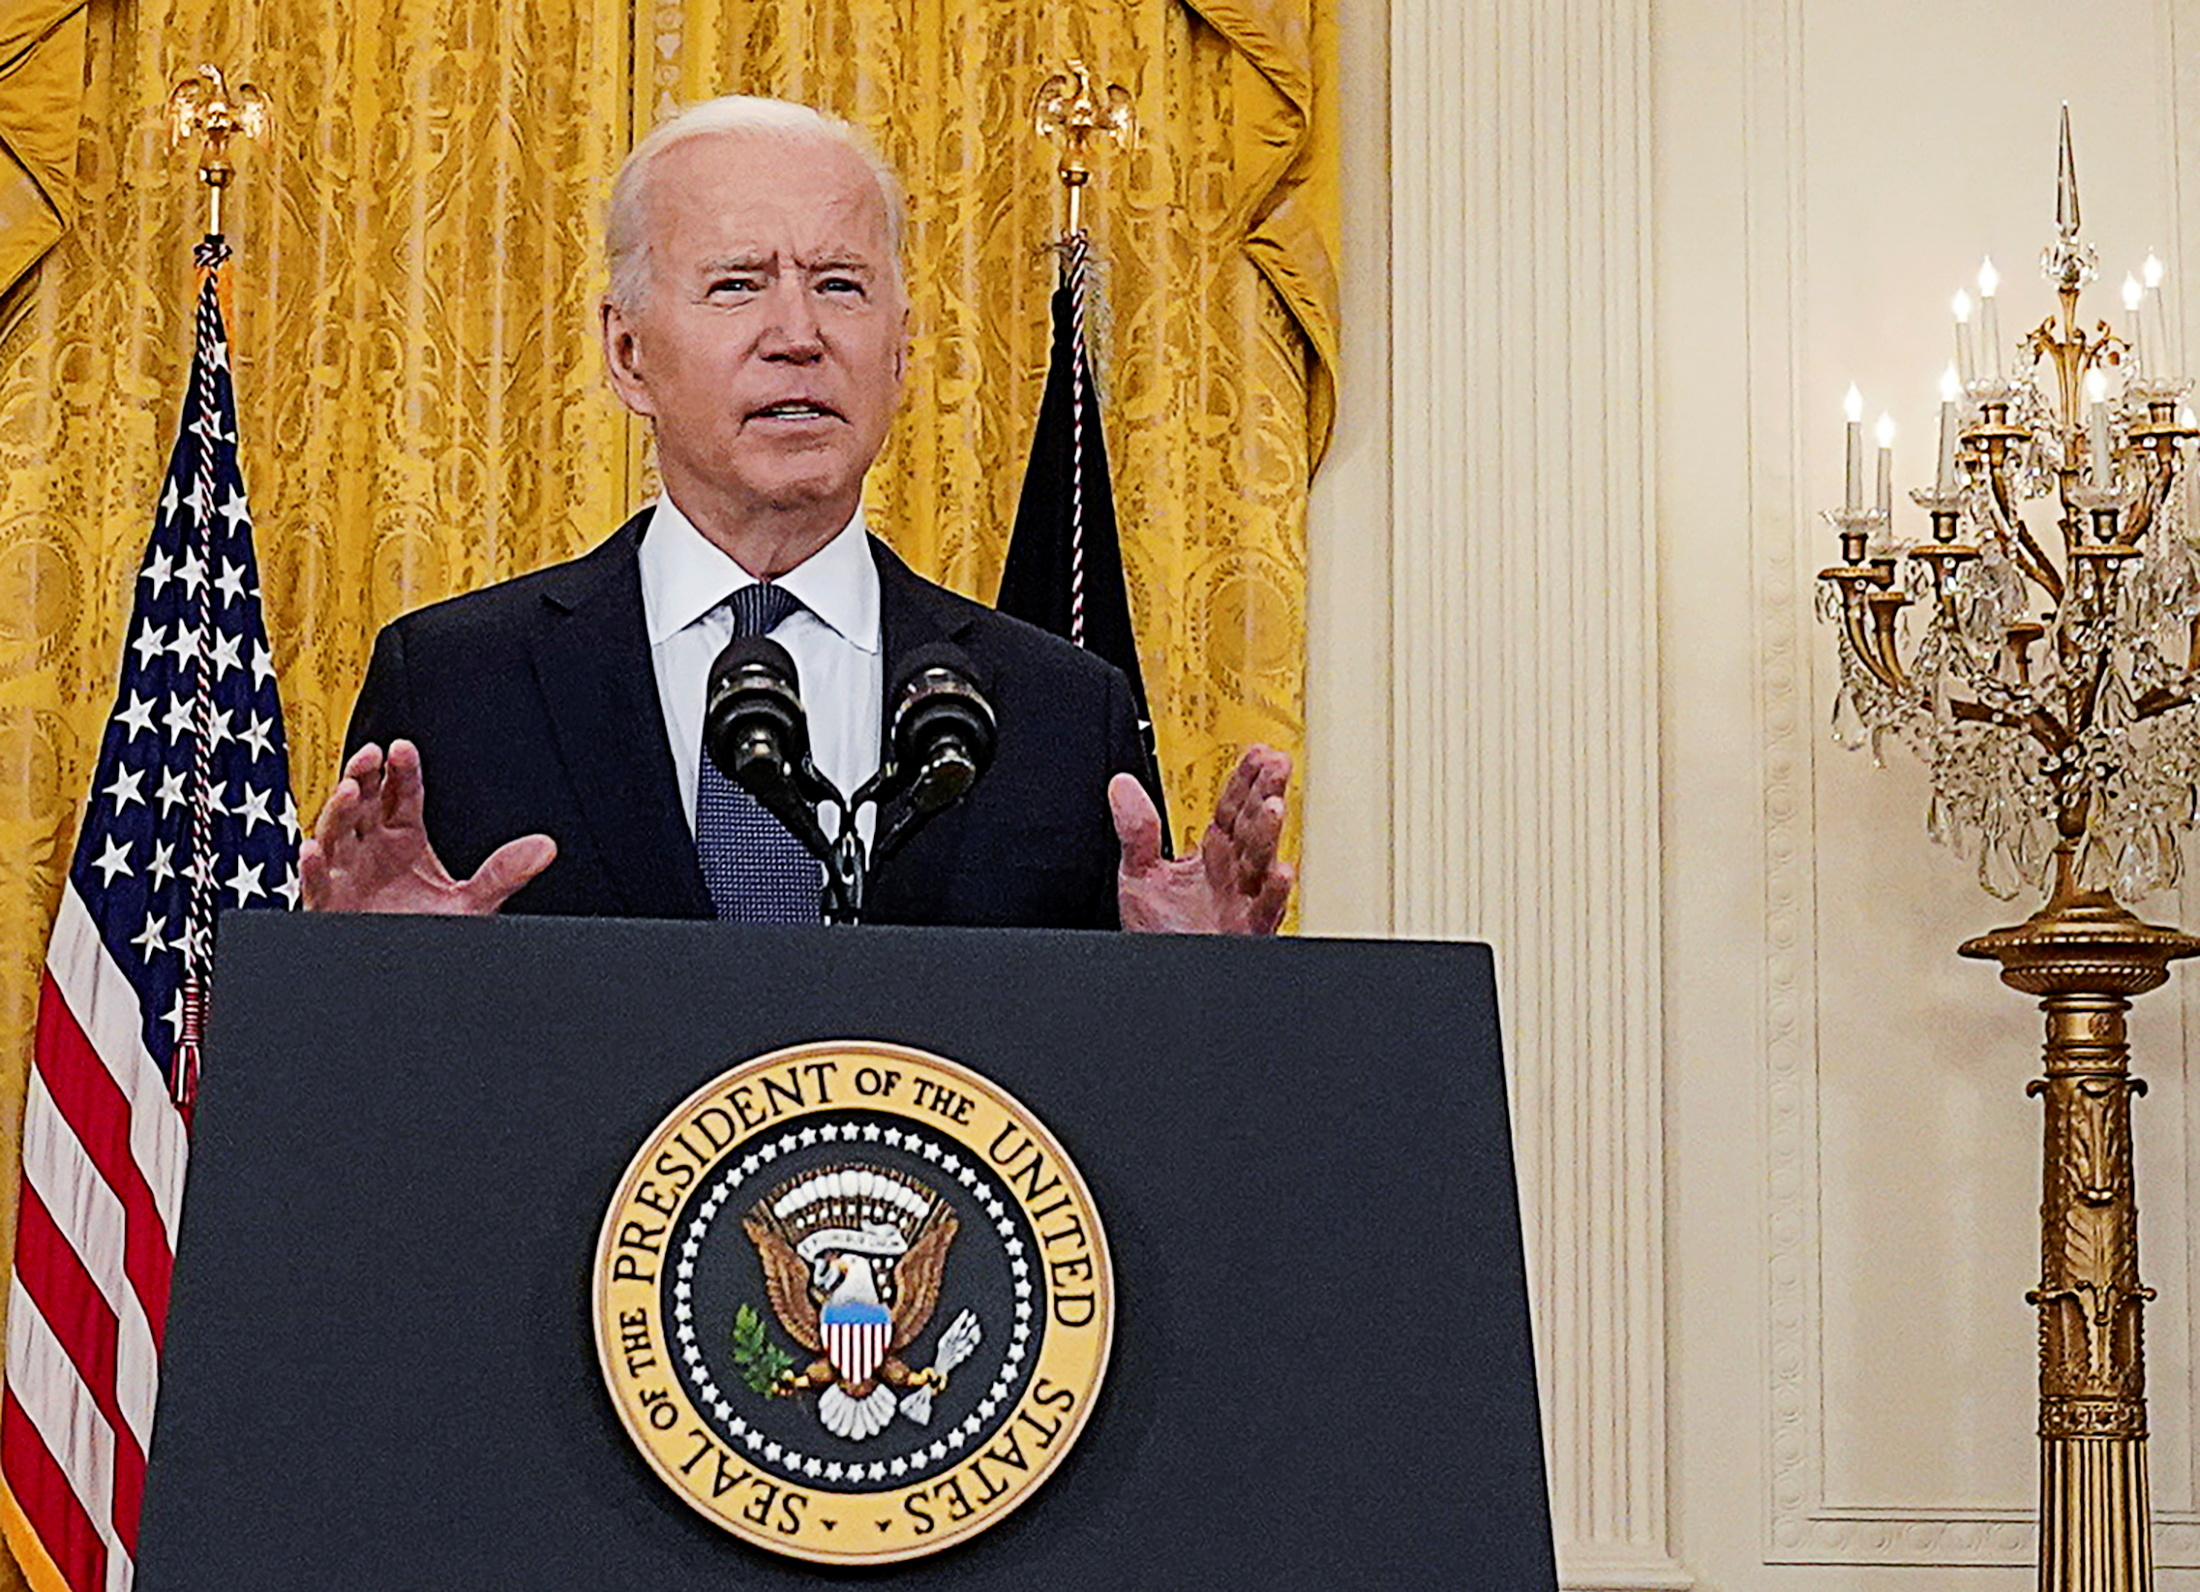 U.S. President Joe Biden delivers remarks on the U.S. economy in the East Room at the White House in Washington, U.S., May 10, 2021. REUTERS/Kevin Lamarque/File Photo